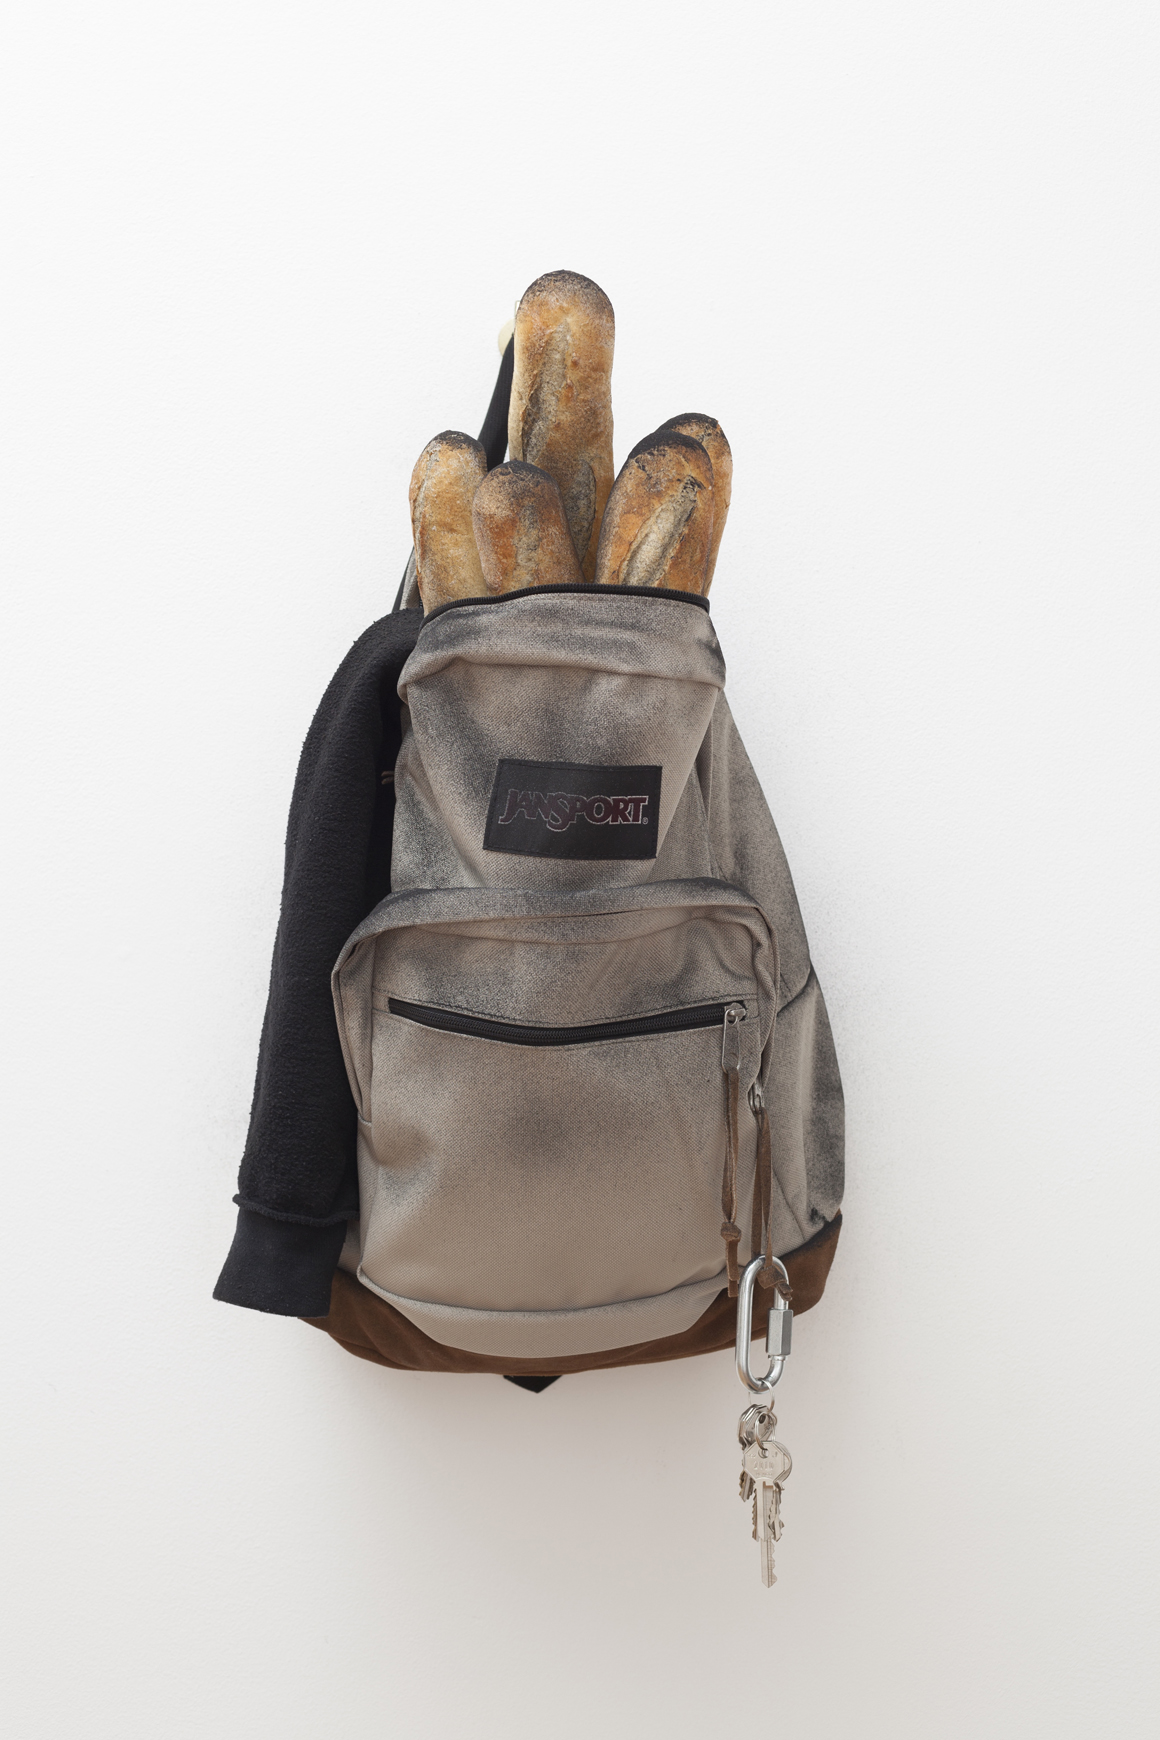 <p><em>Dust (to those looking for abandoned ideas)</em><span class='media'>My bread, my sweatshirt, my backpack, keys to my house, keys to my studio, with charcoal dust</span>variable<br>2015<br><a class='inquire' href='mailto:info@gildargallery.com?subject=Artwork Inquiry FCOR0001&body=I am interested in finding out more about Dust (to those looking for abandoned ideas) by Francisco Cordero Oceguera'>Inquire</a></p>